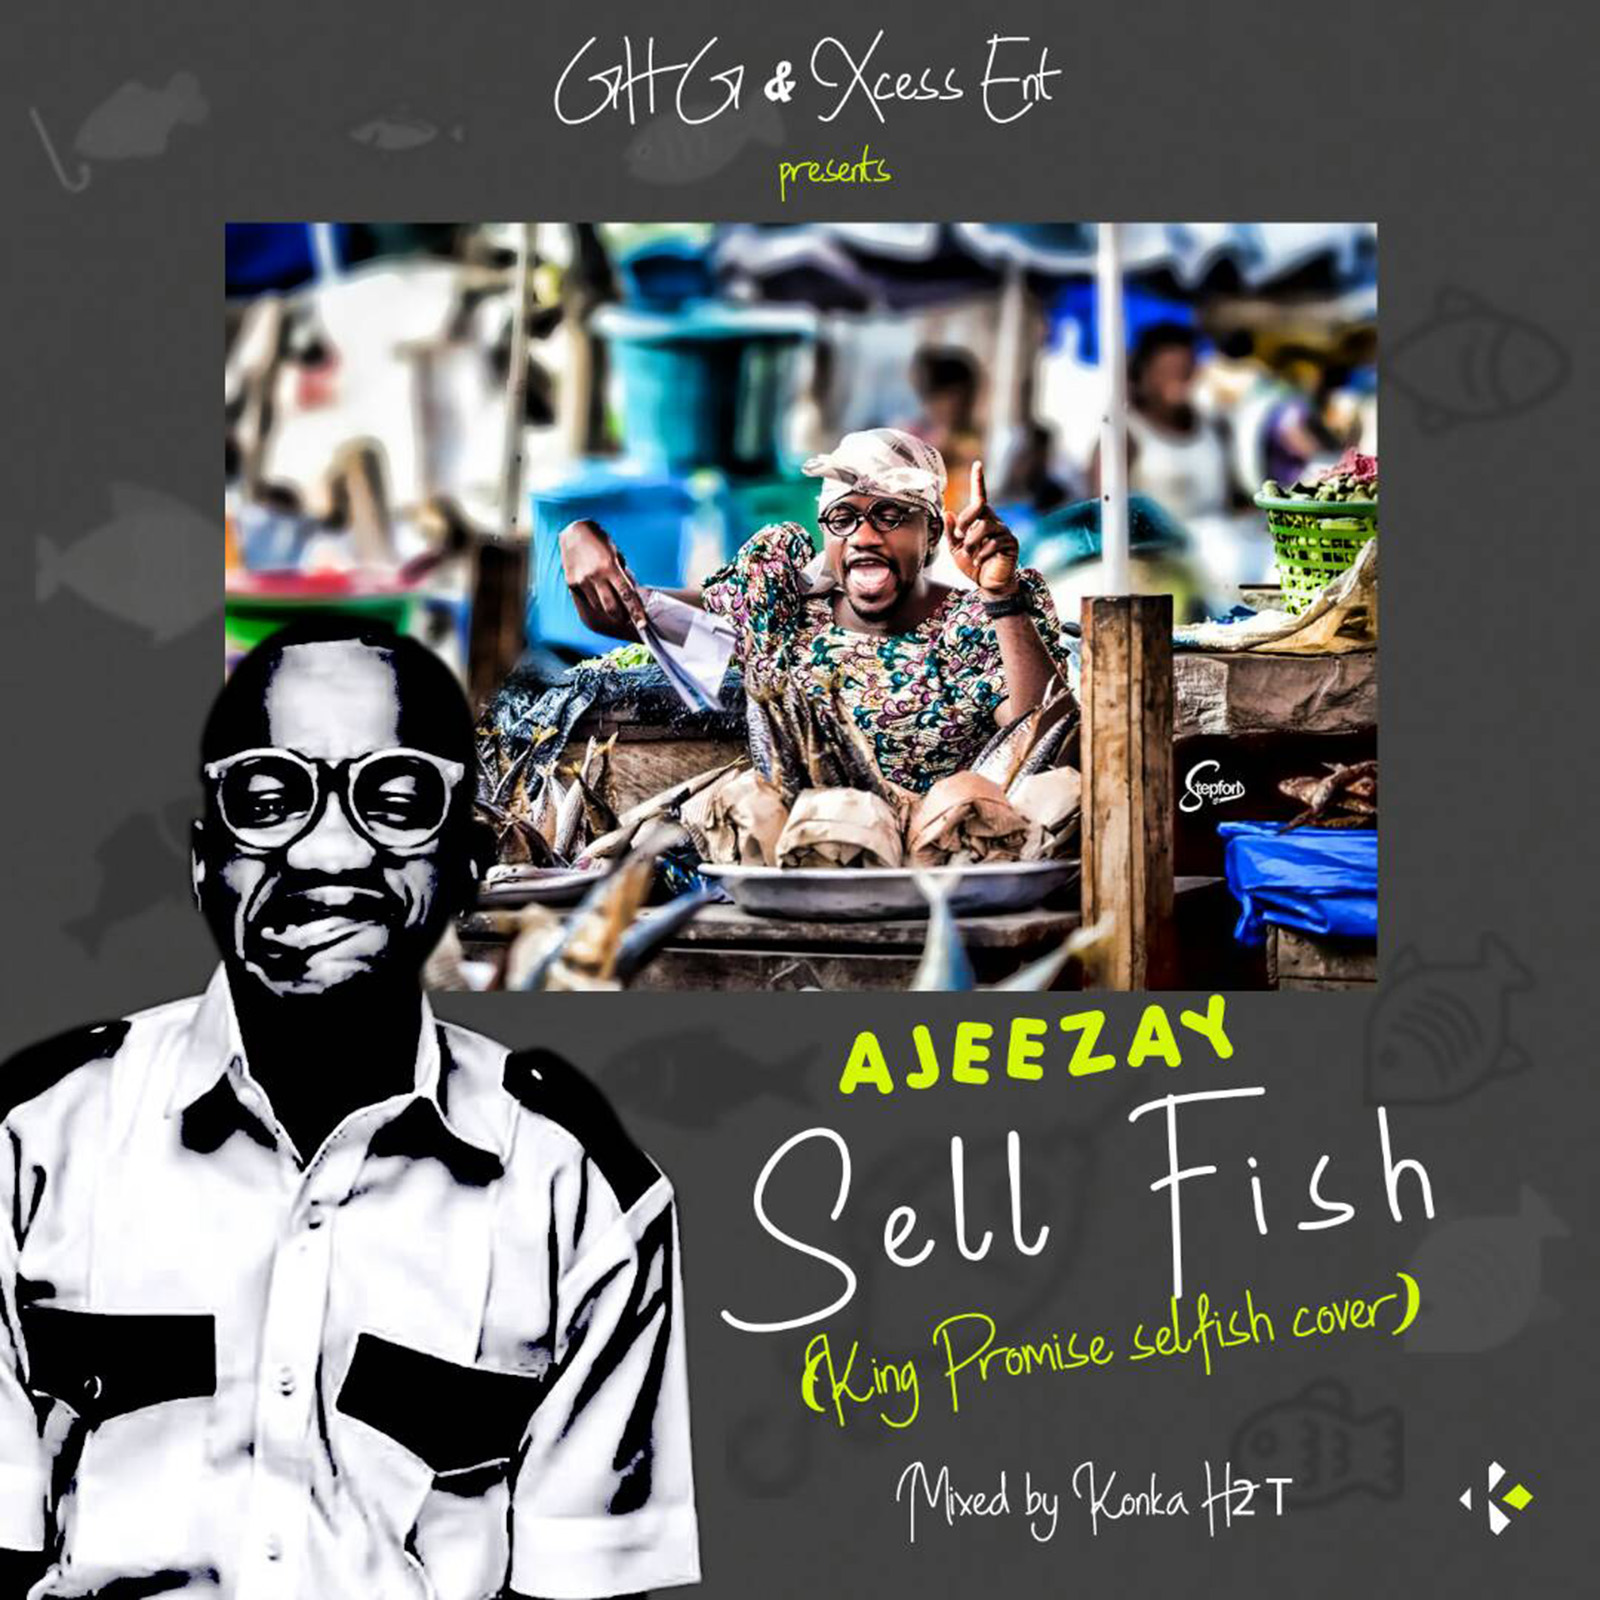 Selfish (King Promise Cover) by Ajeezay